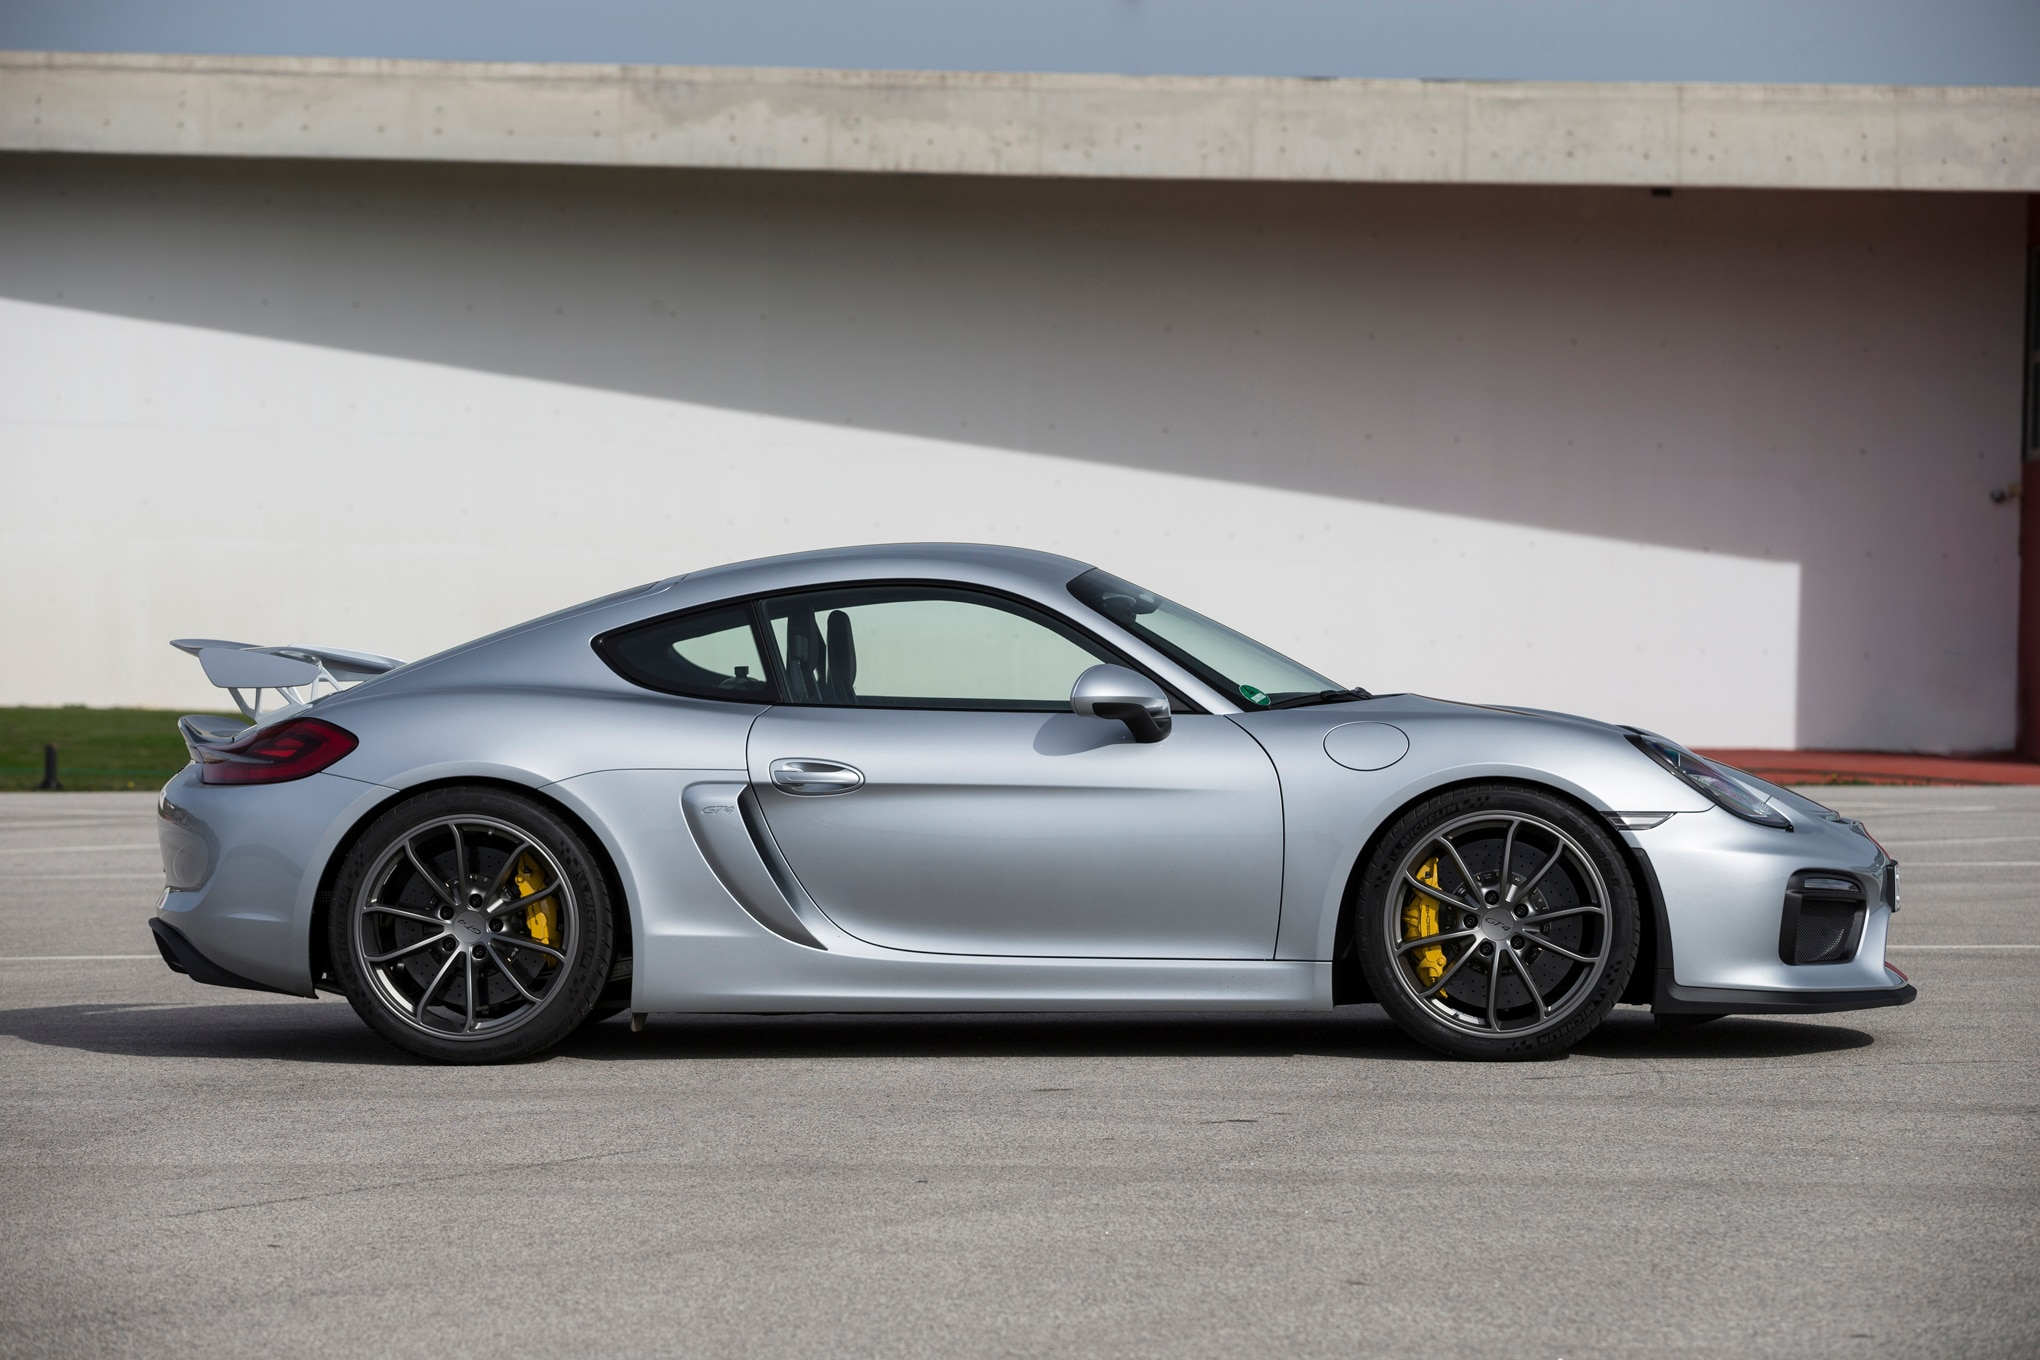 My Dry Track Day With The Porsche Cayman Gt4 And 911 Gt3 Rs